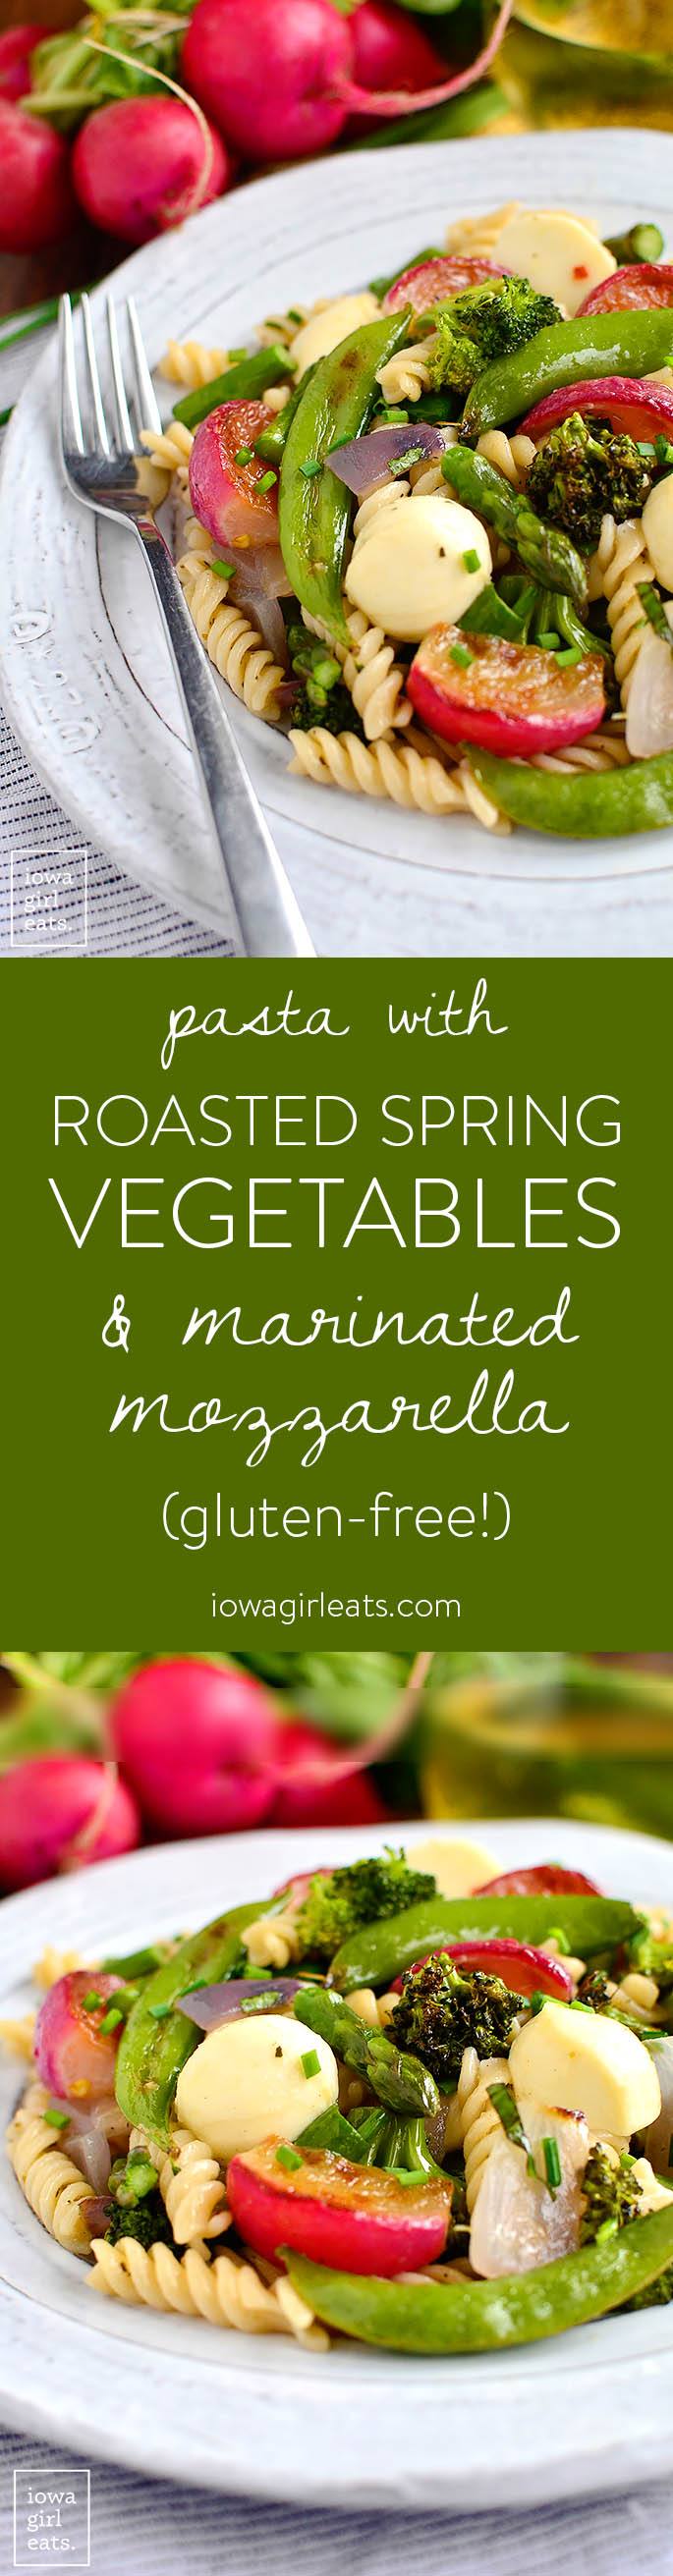 Pasta with Roasted Spring Vegetables and Marinated Mozzarella is a light and healthy, gluten-free main featuring fresh spring vegetables, and decadent marinated mozzarella balls. | iowagirleats.com